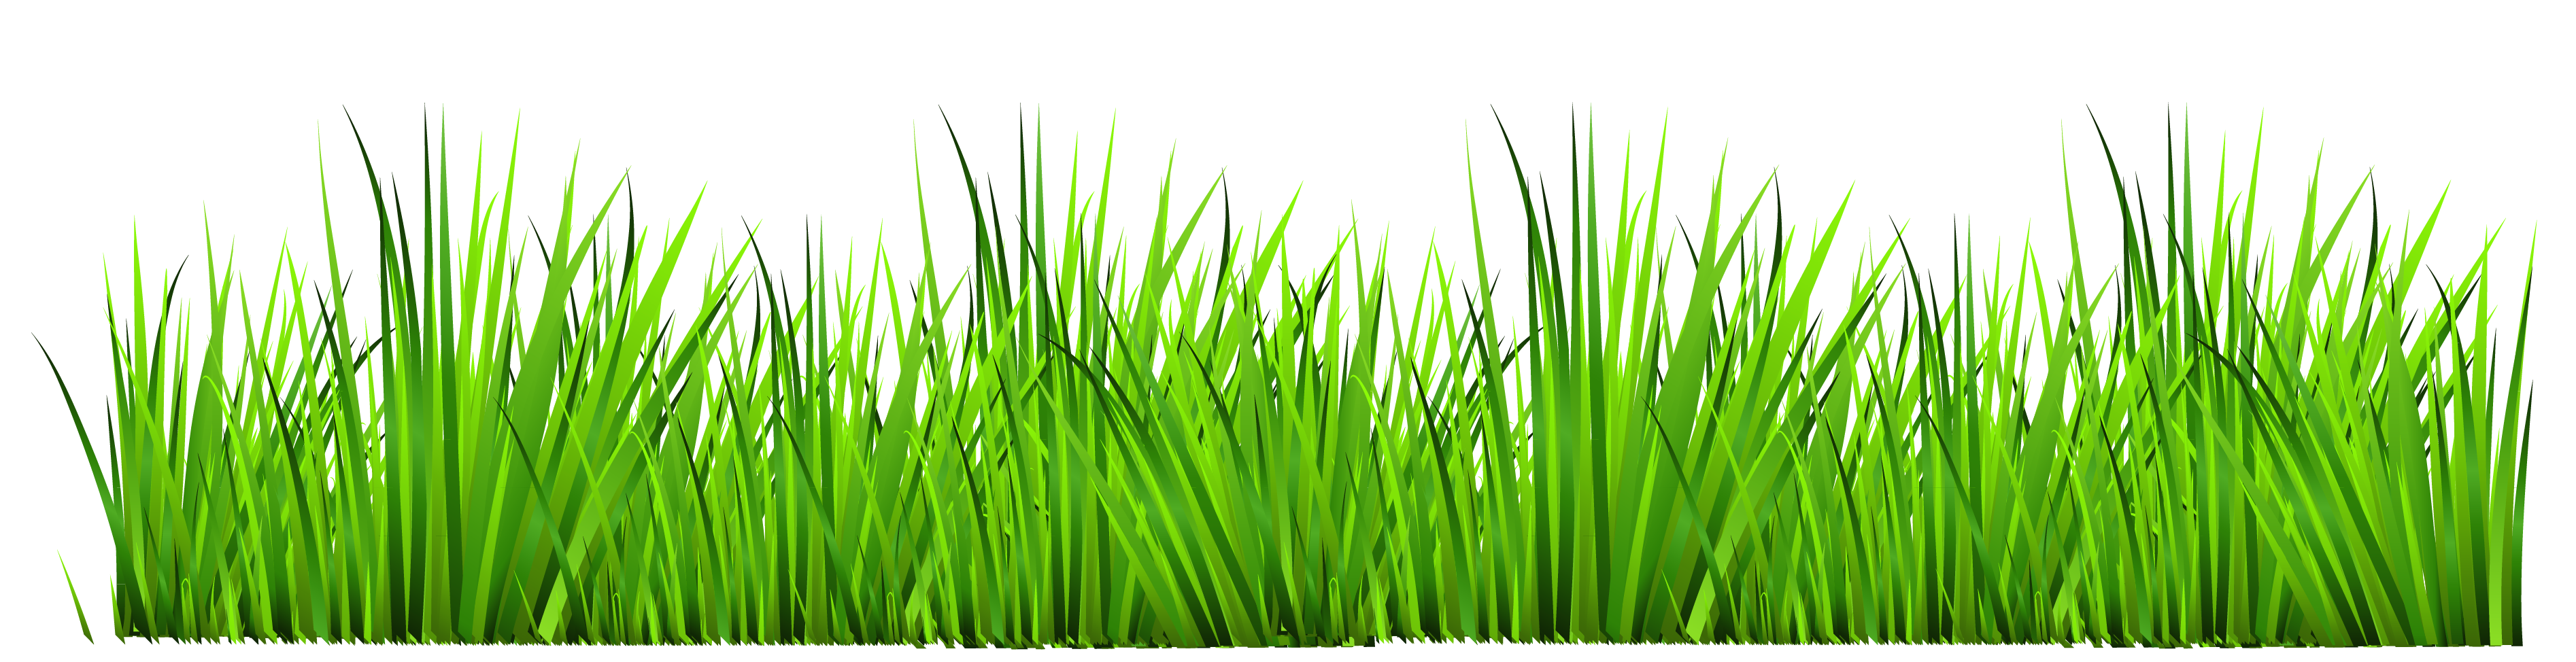 grass clipart transparent grass clipart free clip art images png rh pinterest co uk grass clipart black and white grass clipart png